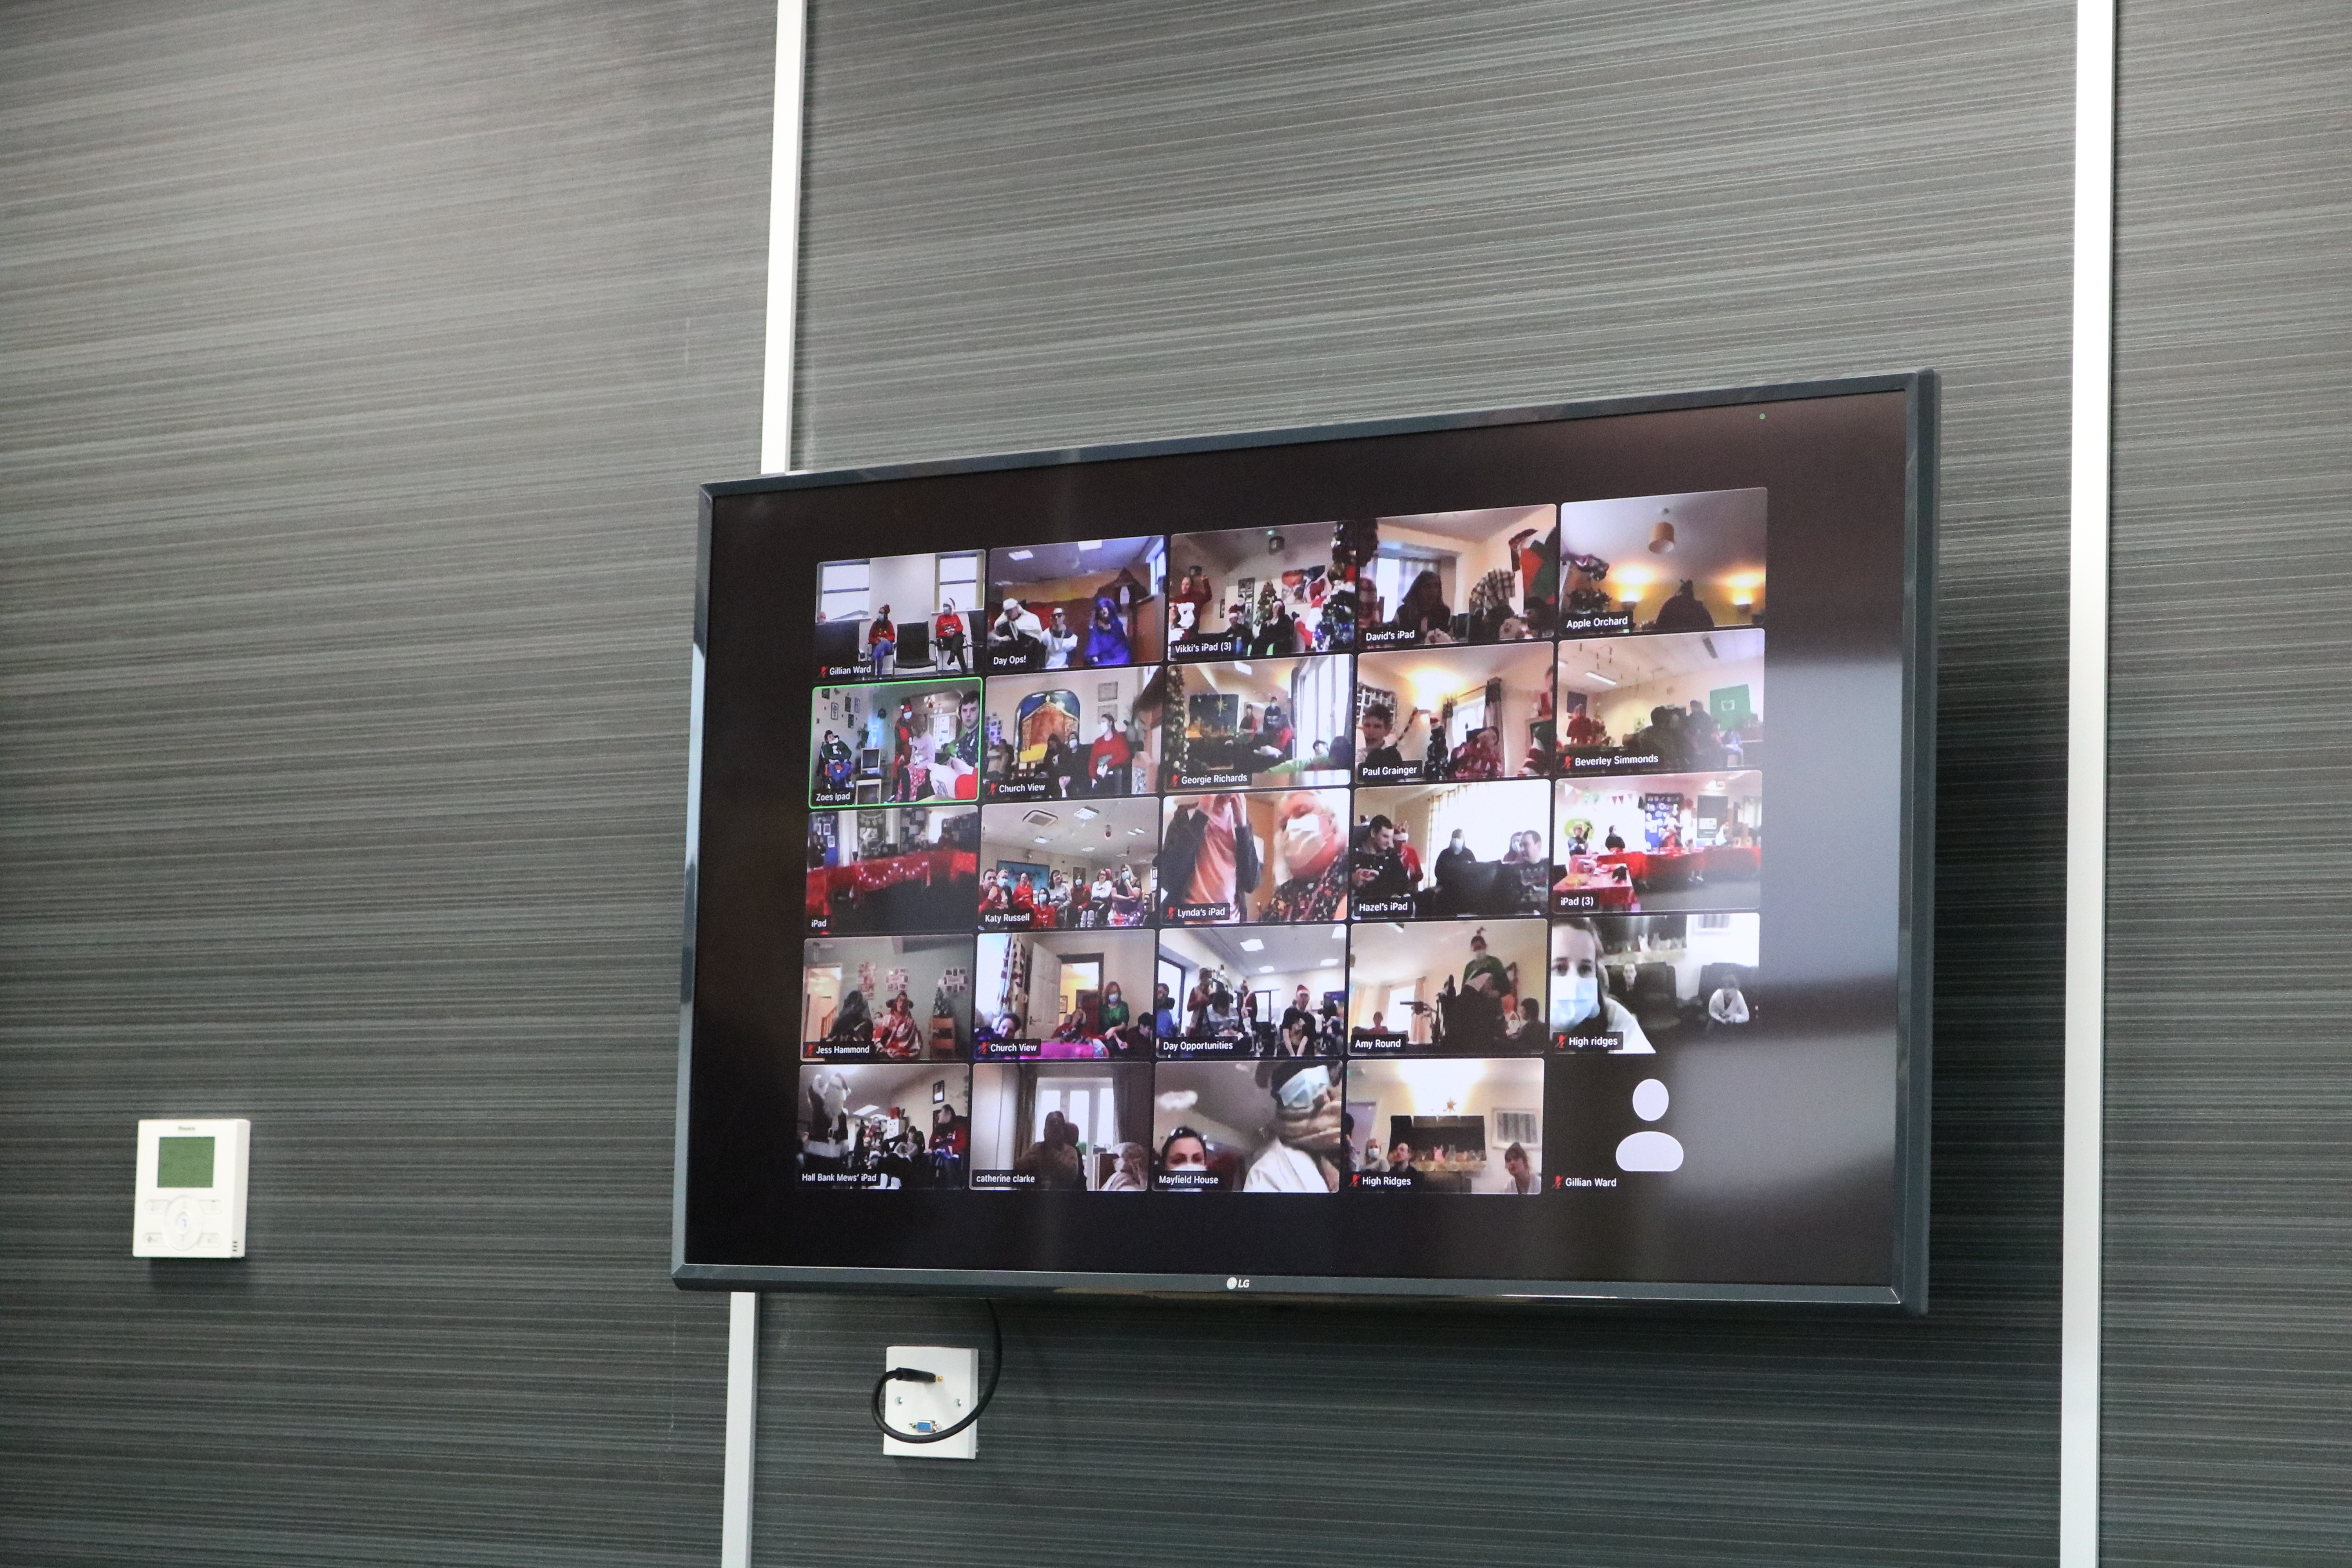 Our Virtual Christmas Party via Zoom!